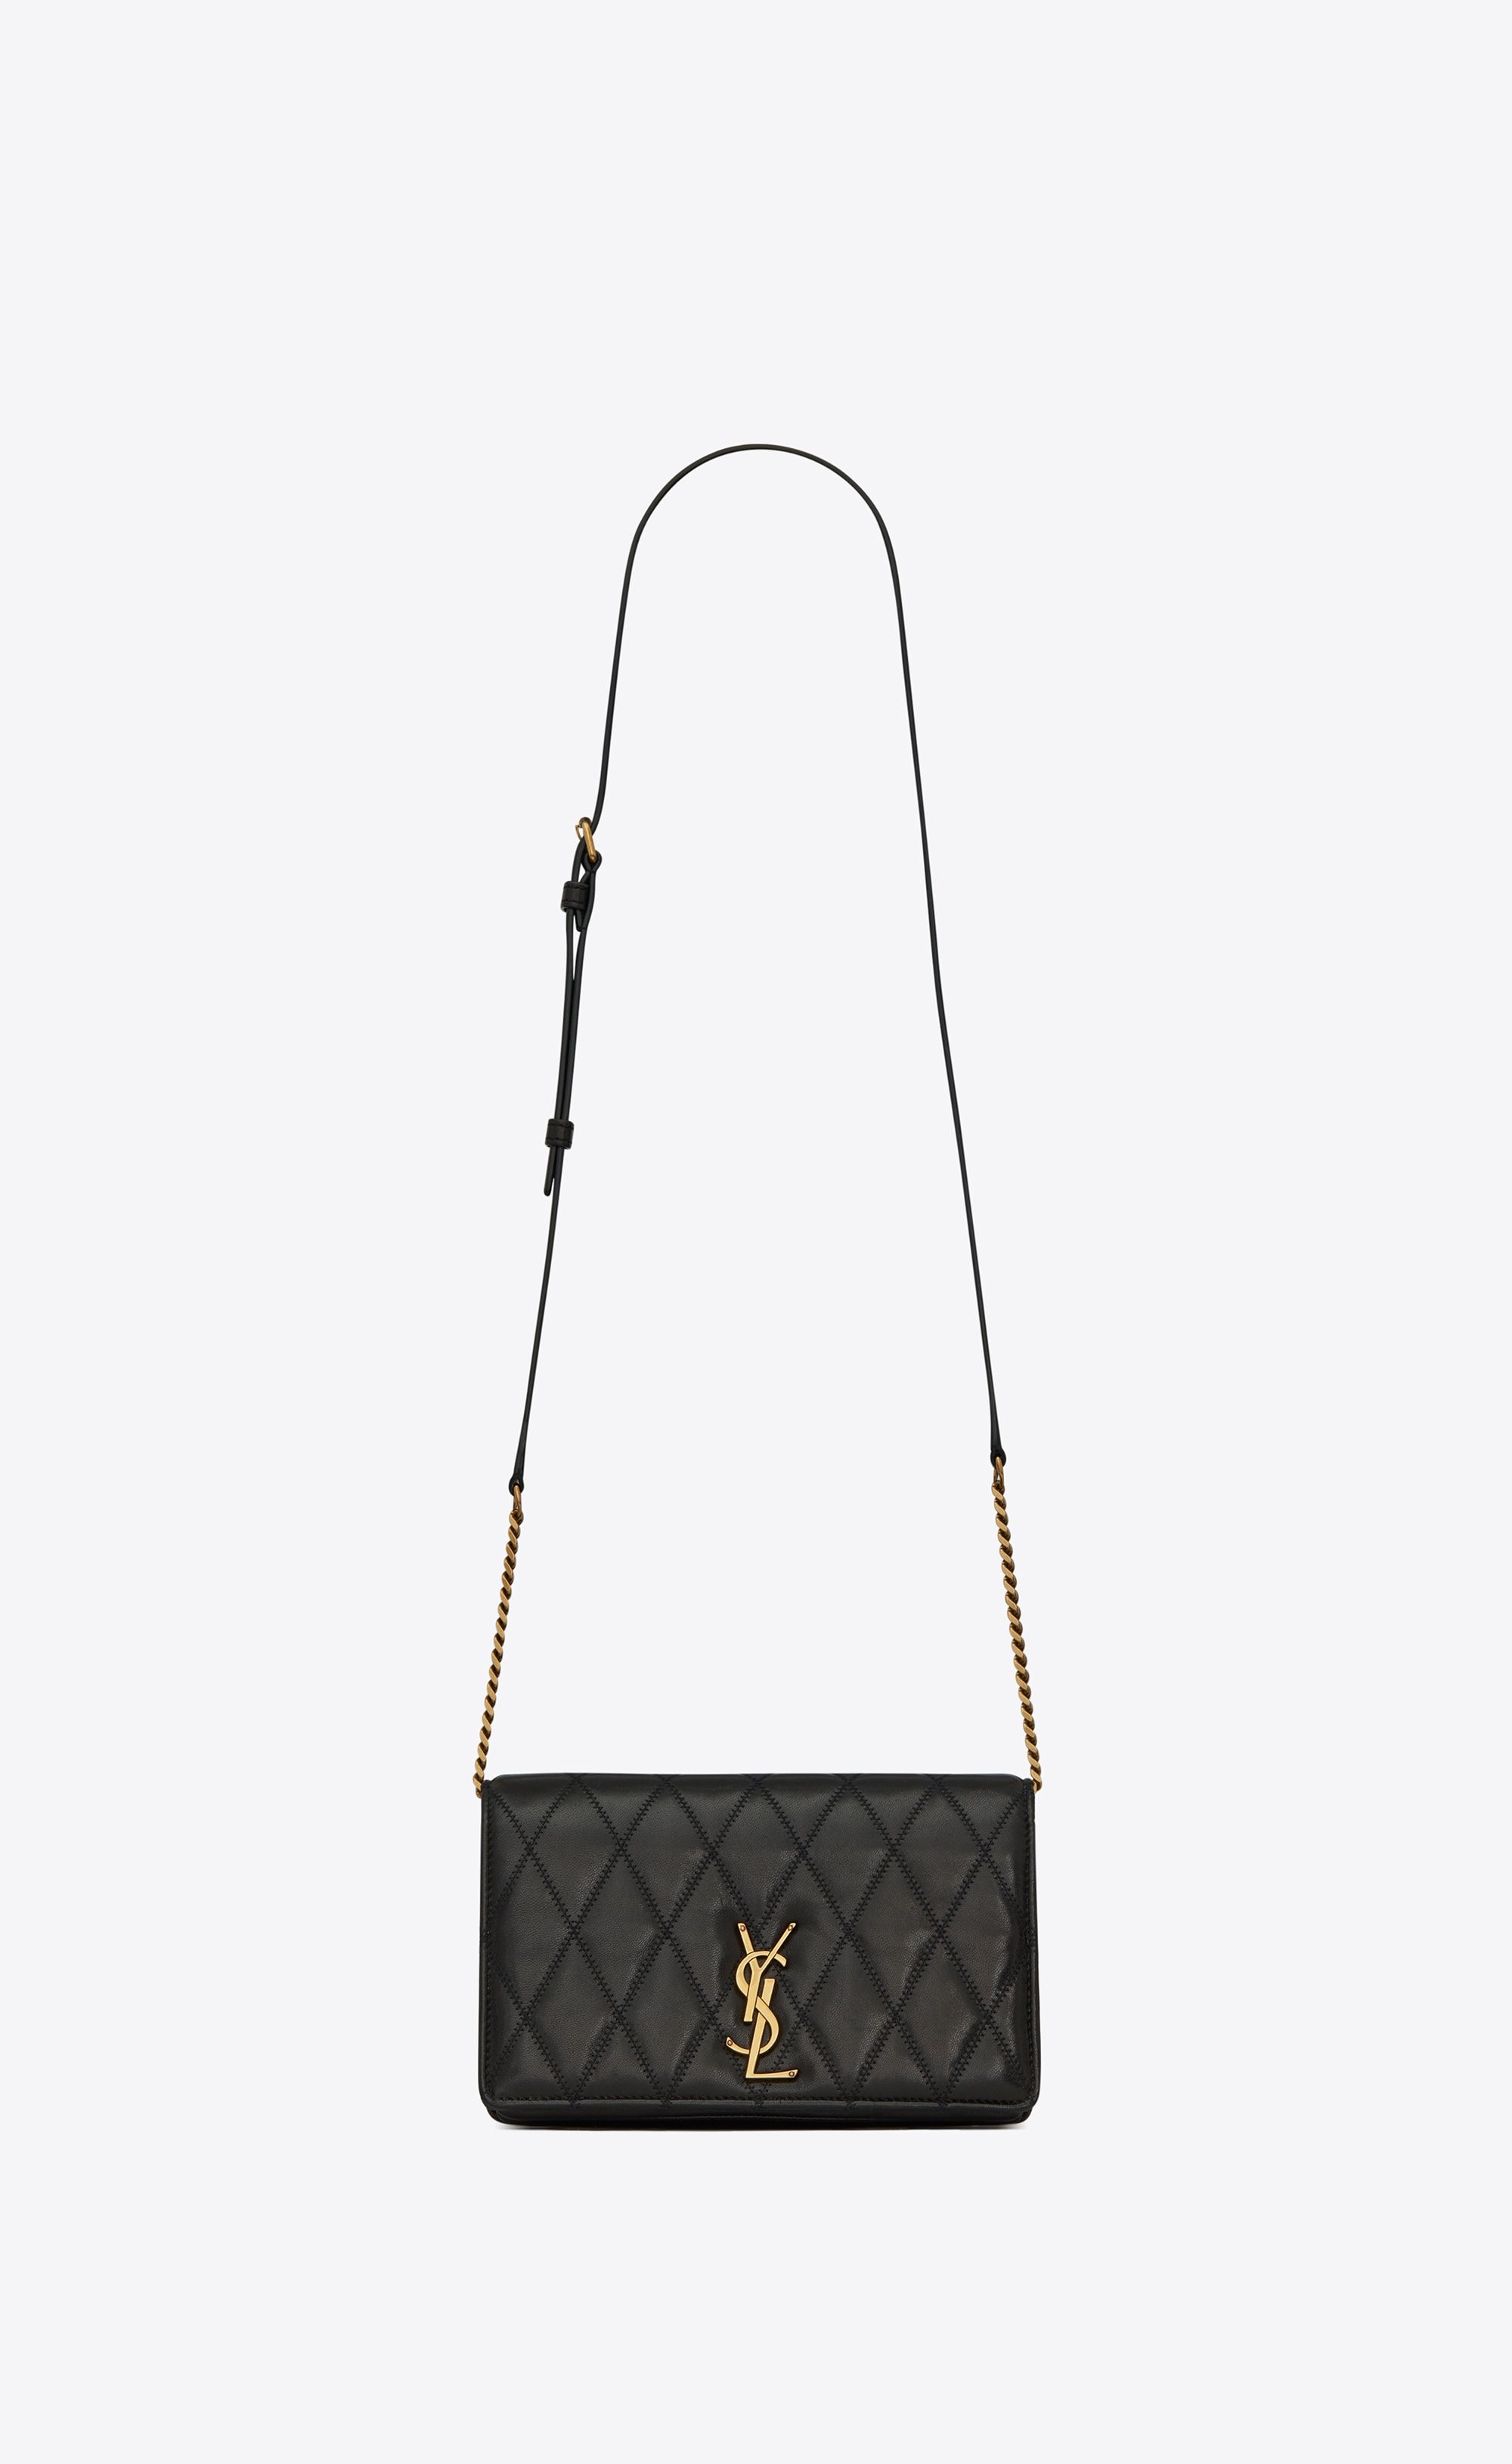 728563a8a9e ANGIE chain bag in diamond-quilted lambskin in 2019 | Fashion | Bags ...